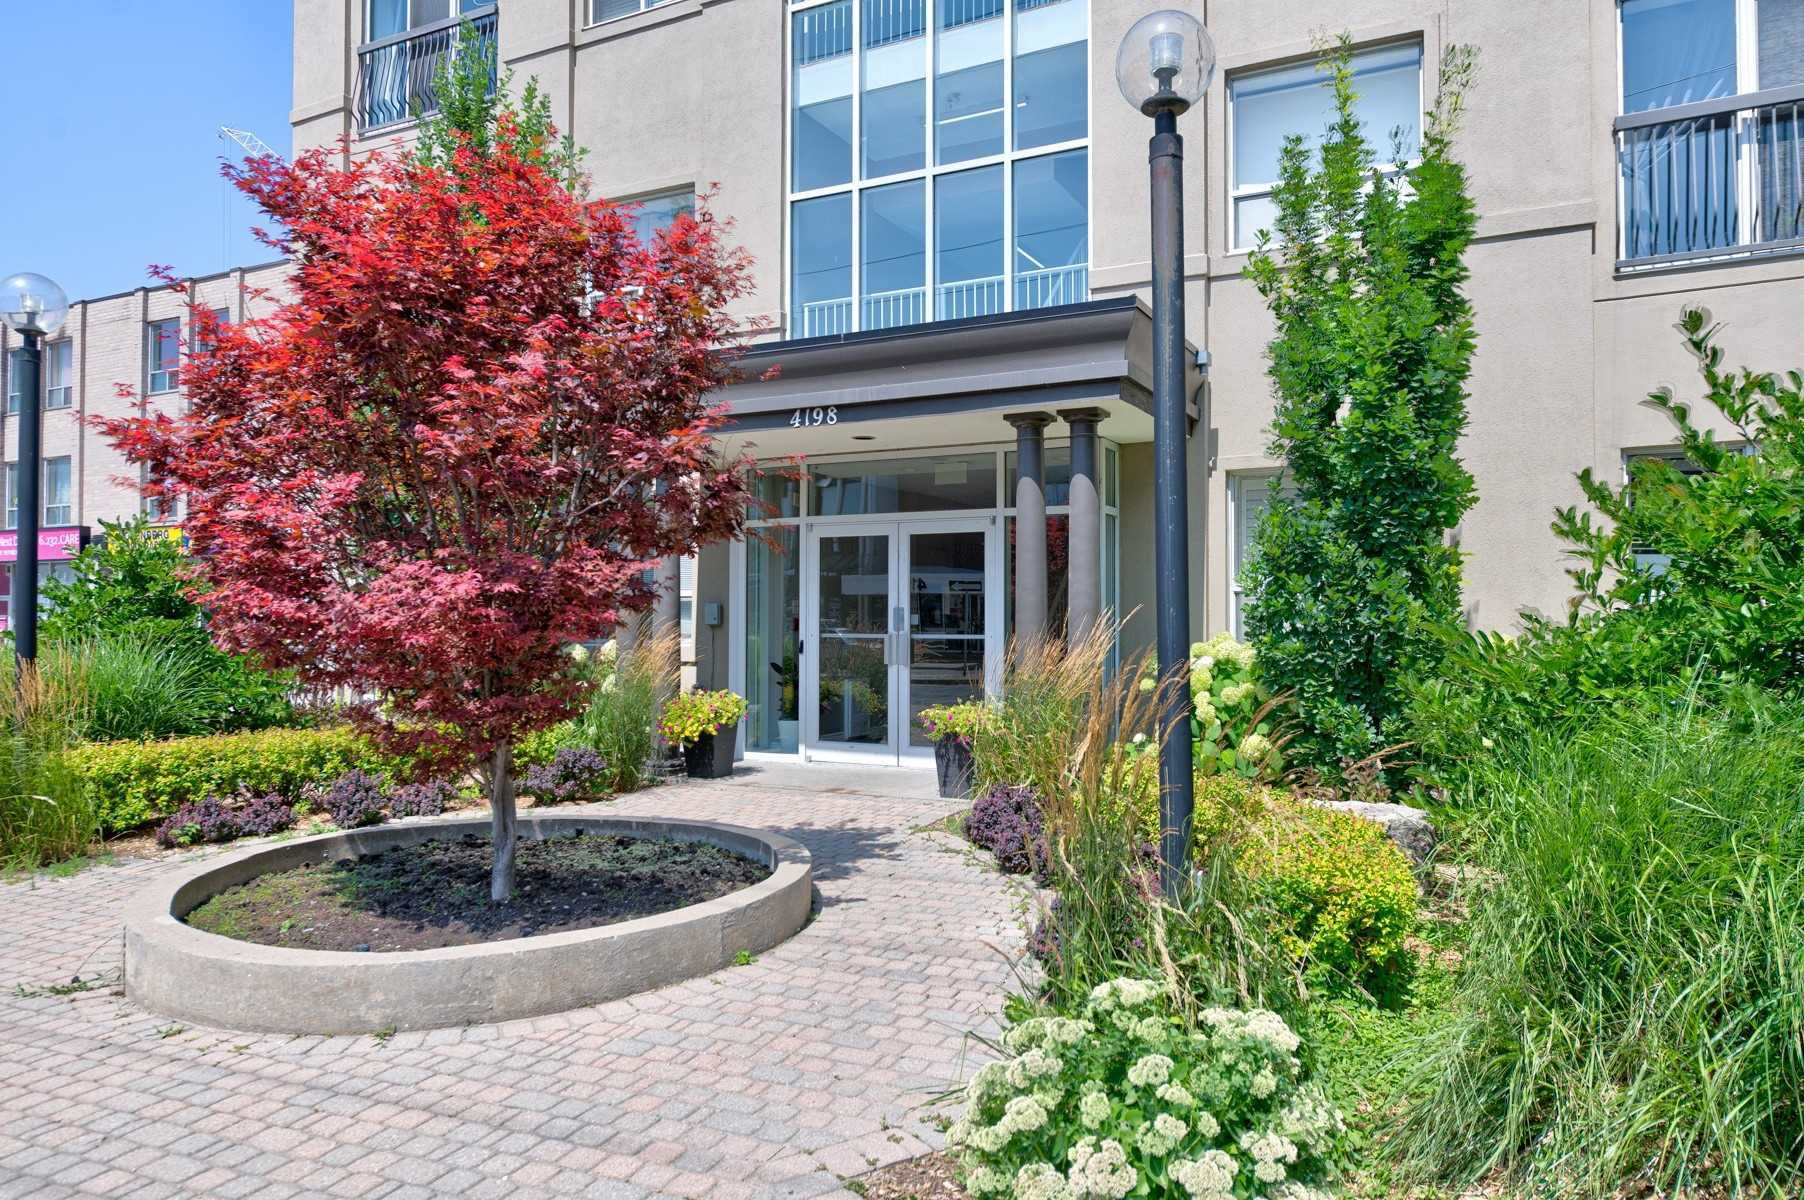 Main Photo: 306 4198 W Dundas Street in Toronto: Edenbridge-Humber Valley Condo for lease (Toronto W08)  : MLS®# W4534507